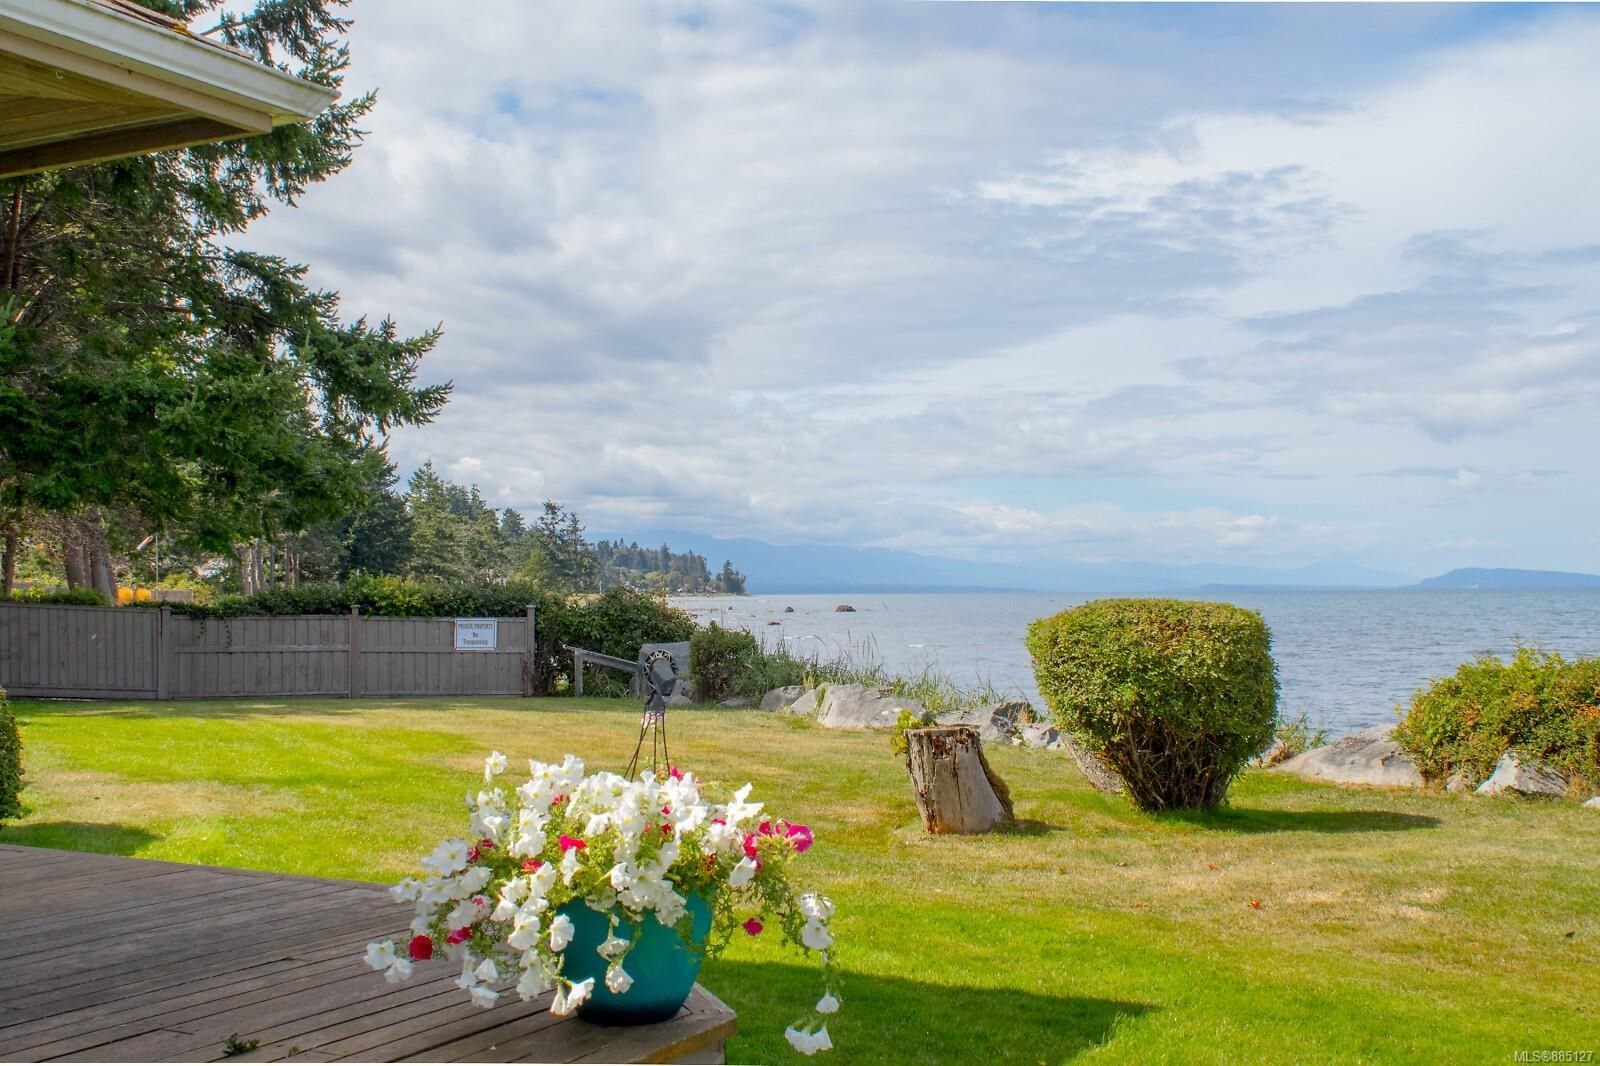 Photo 44: Photos: 26 529 Johnstone Rd in : PQ French Creek Row/Townhouse for sale (Parksville/Qualicum)  : MLS®# 885127